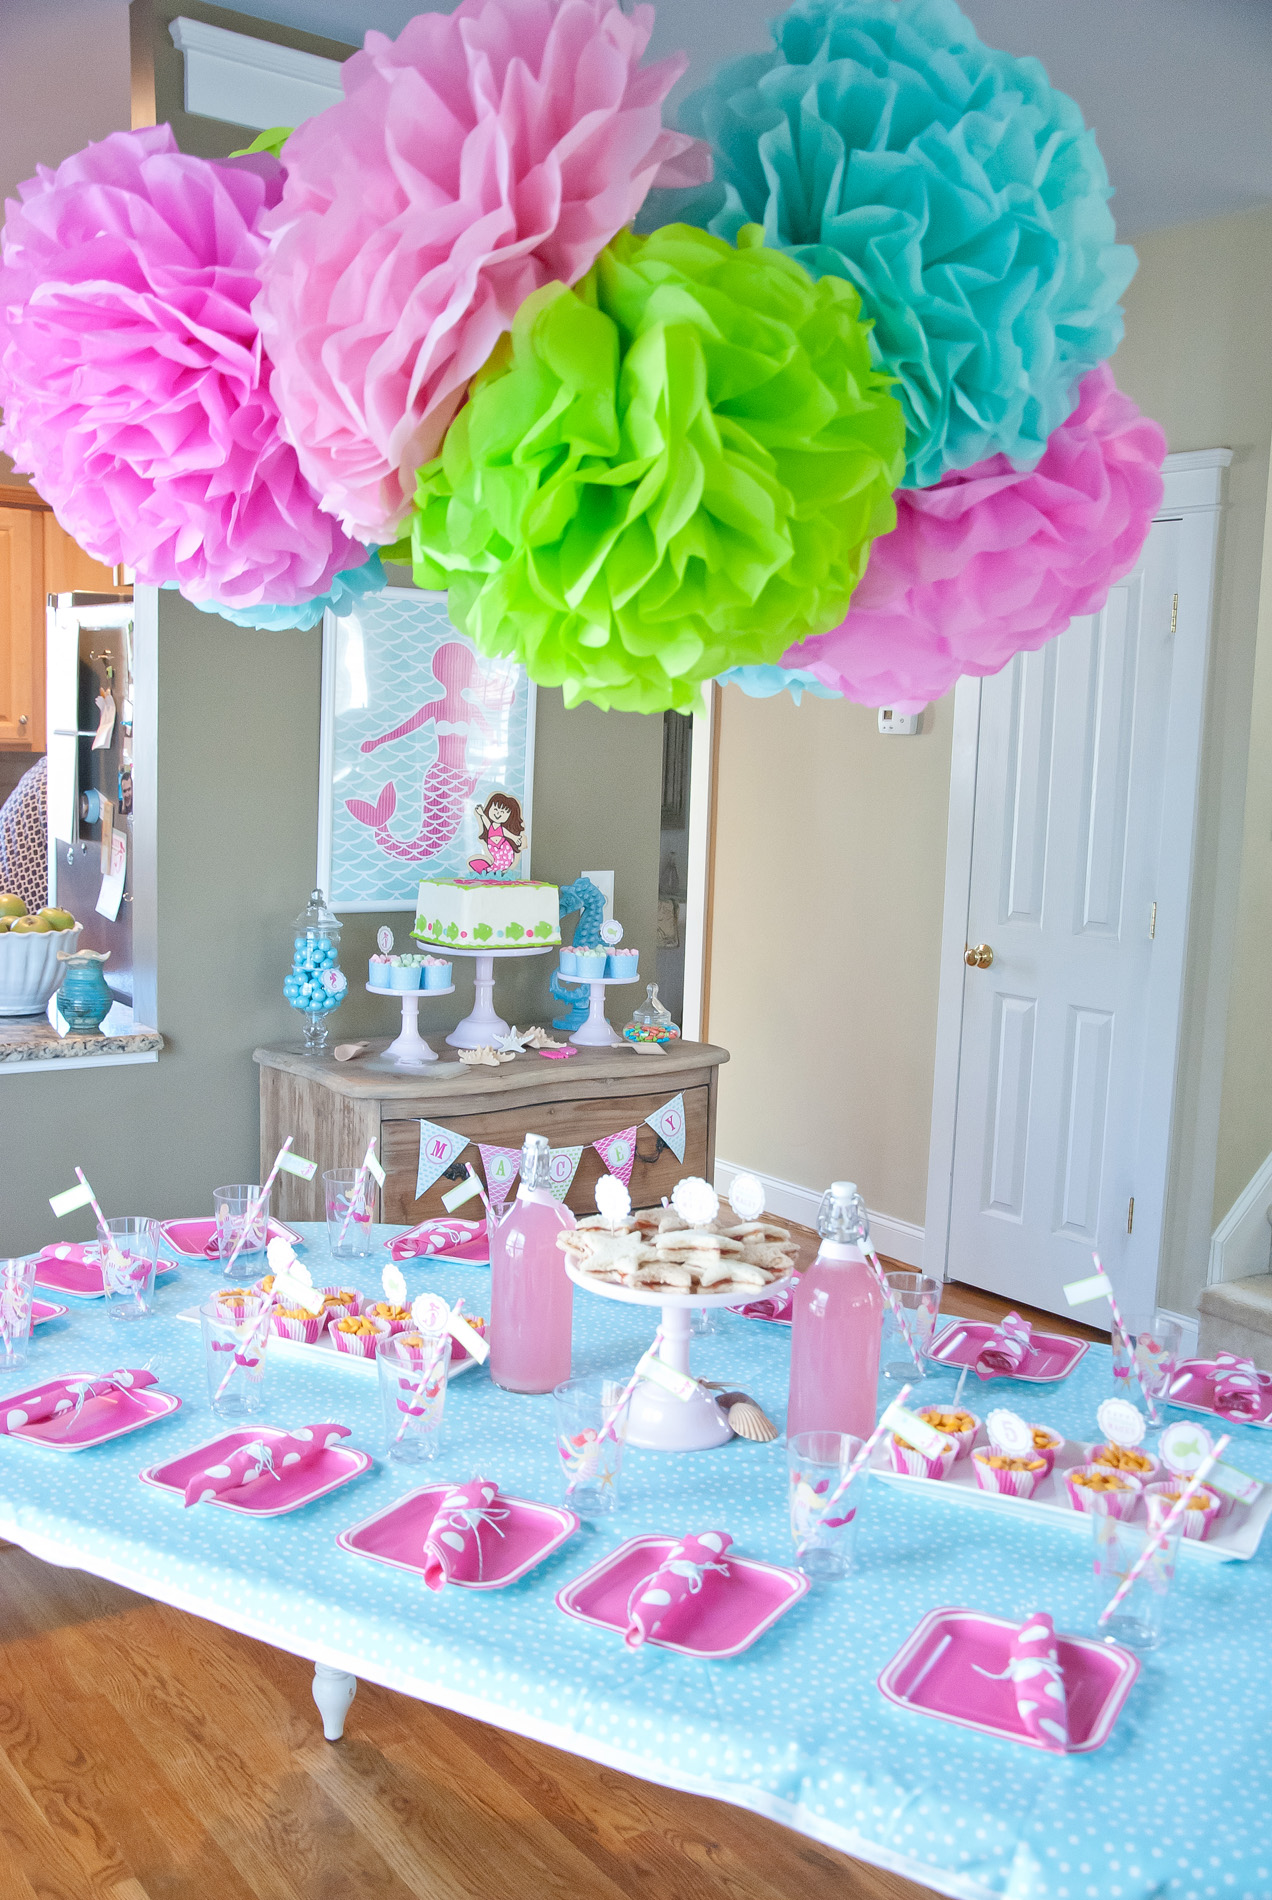 A dreamy mermaid birthday party anders ruff custom for Idee deco table